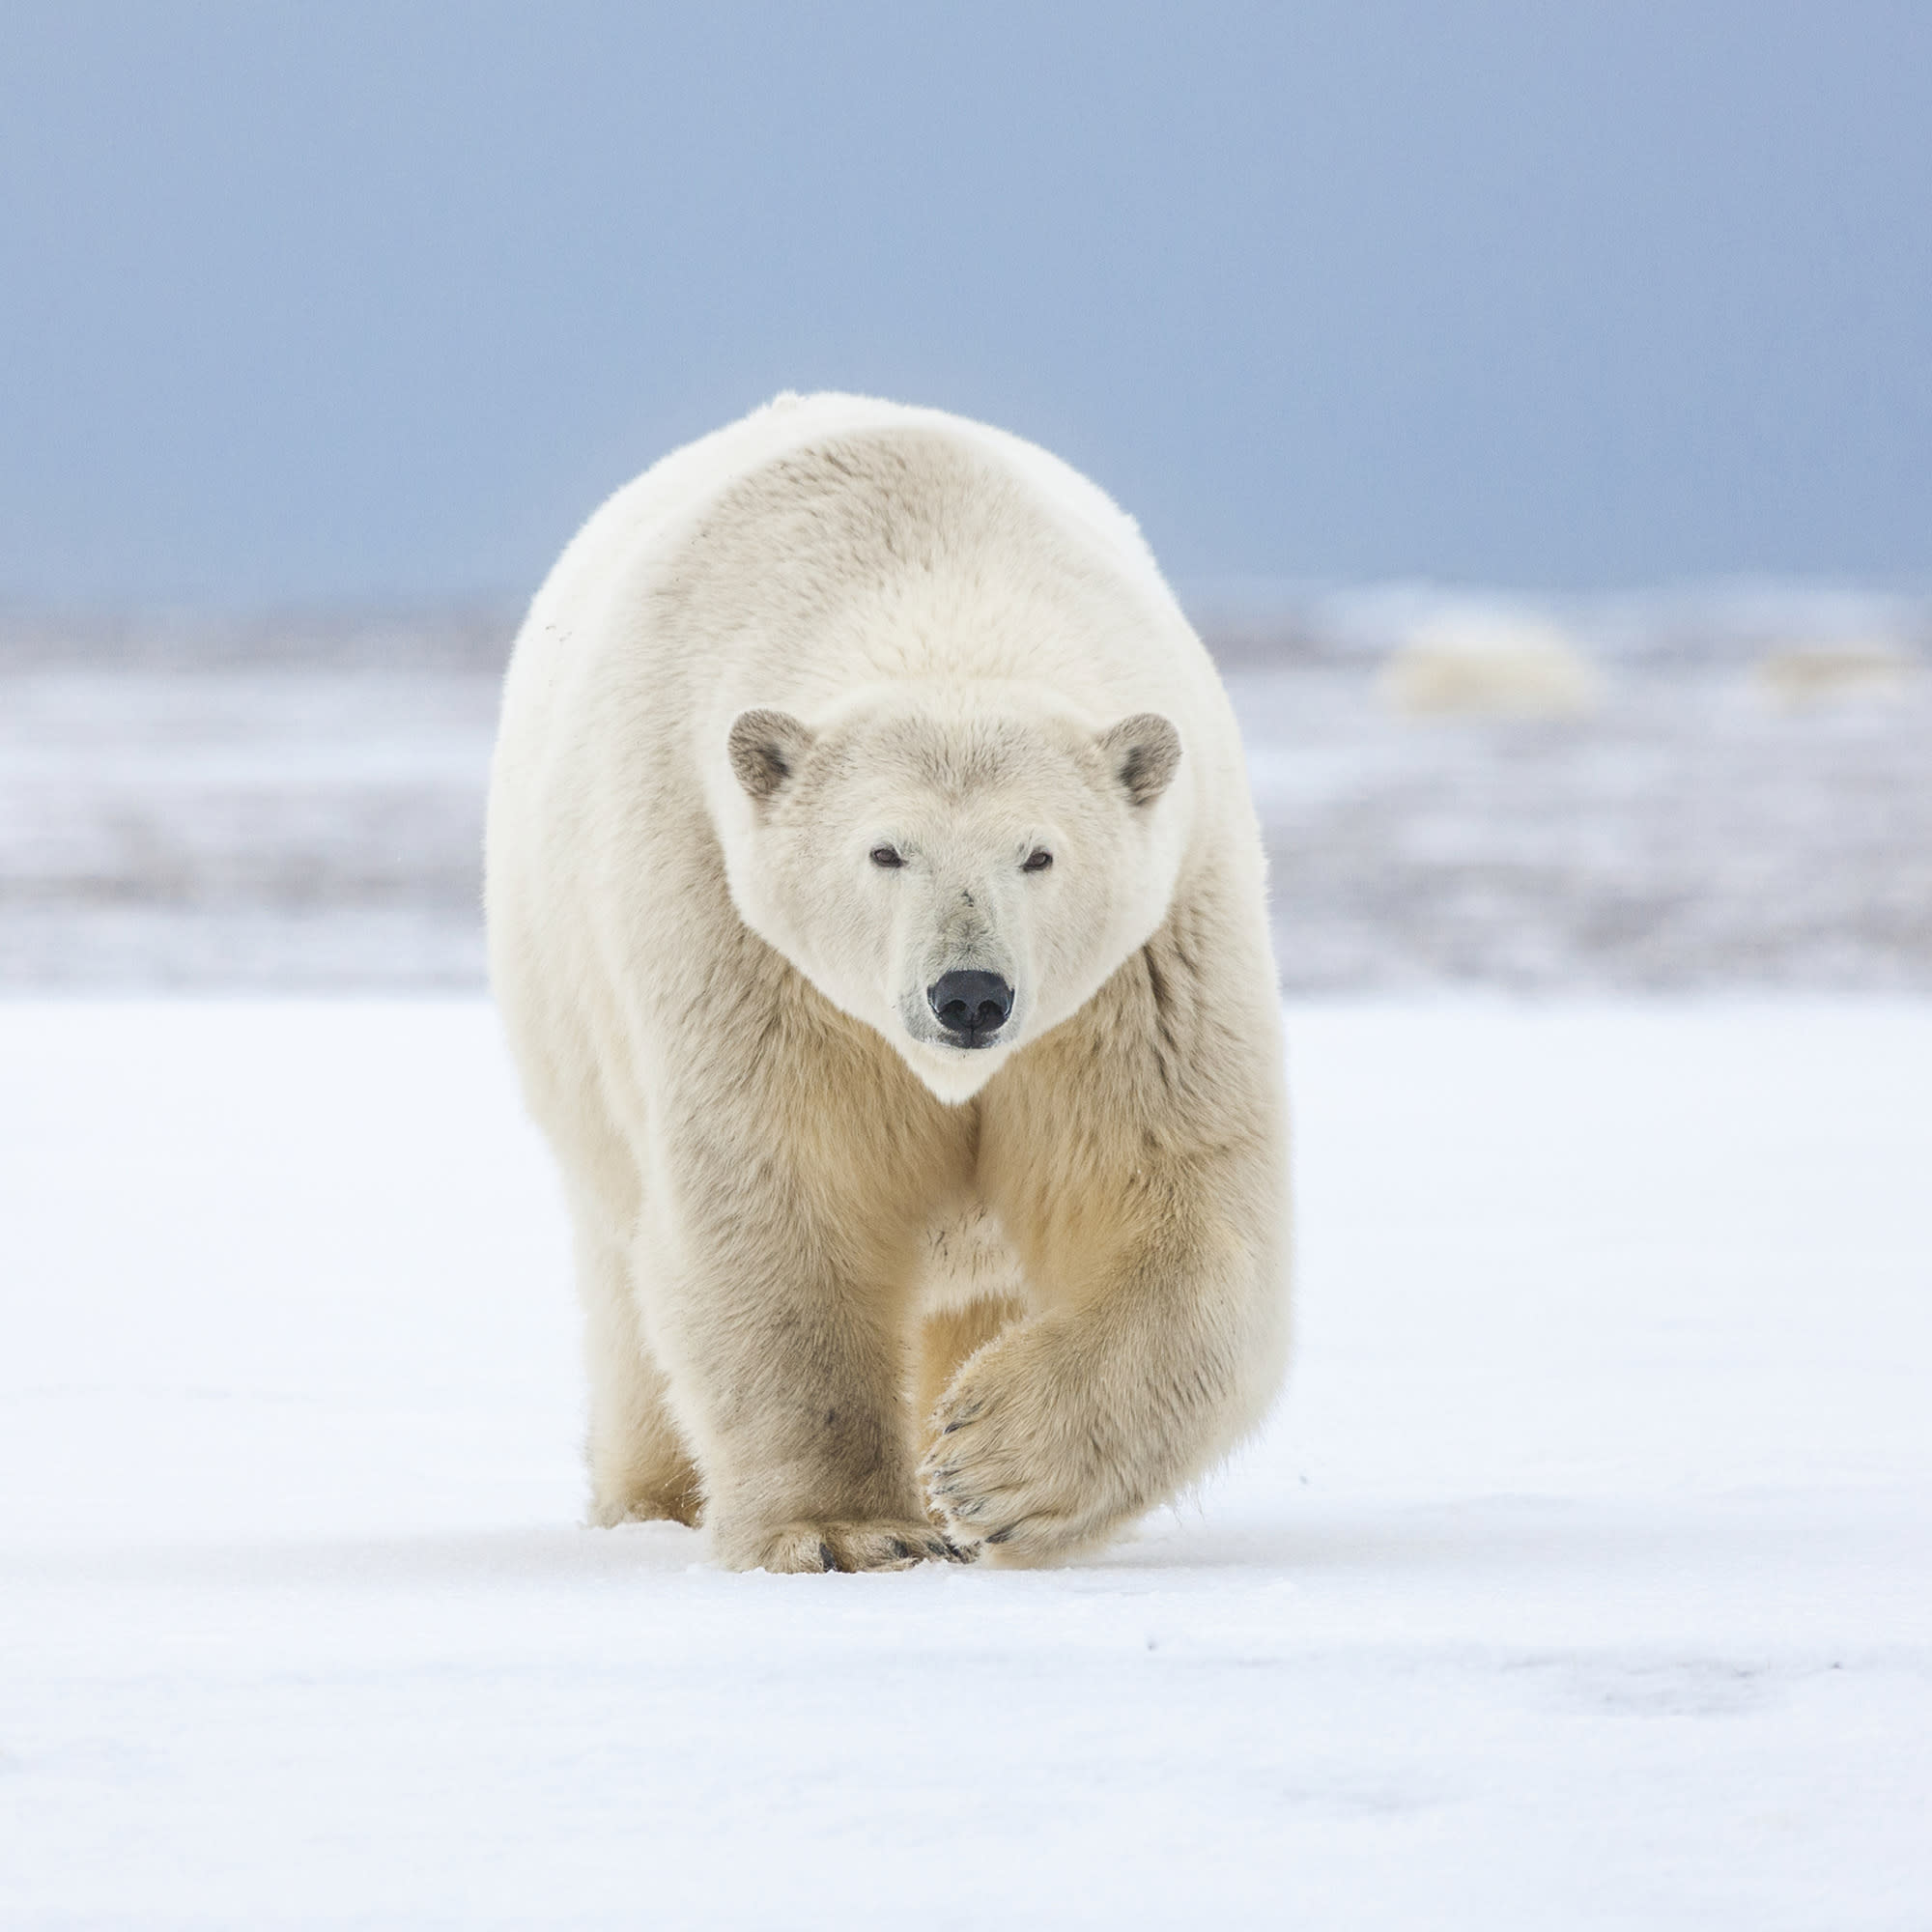 Polar bears may die out by 2100 due to climate change